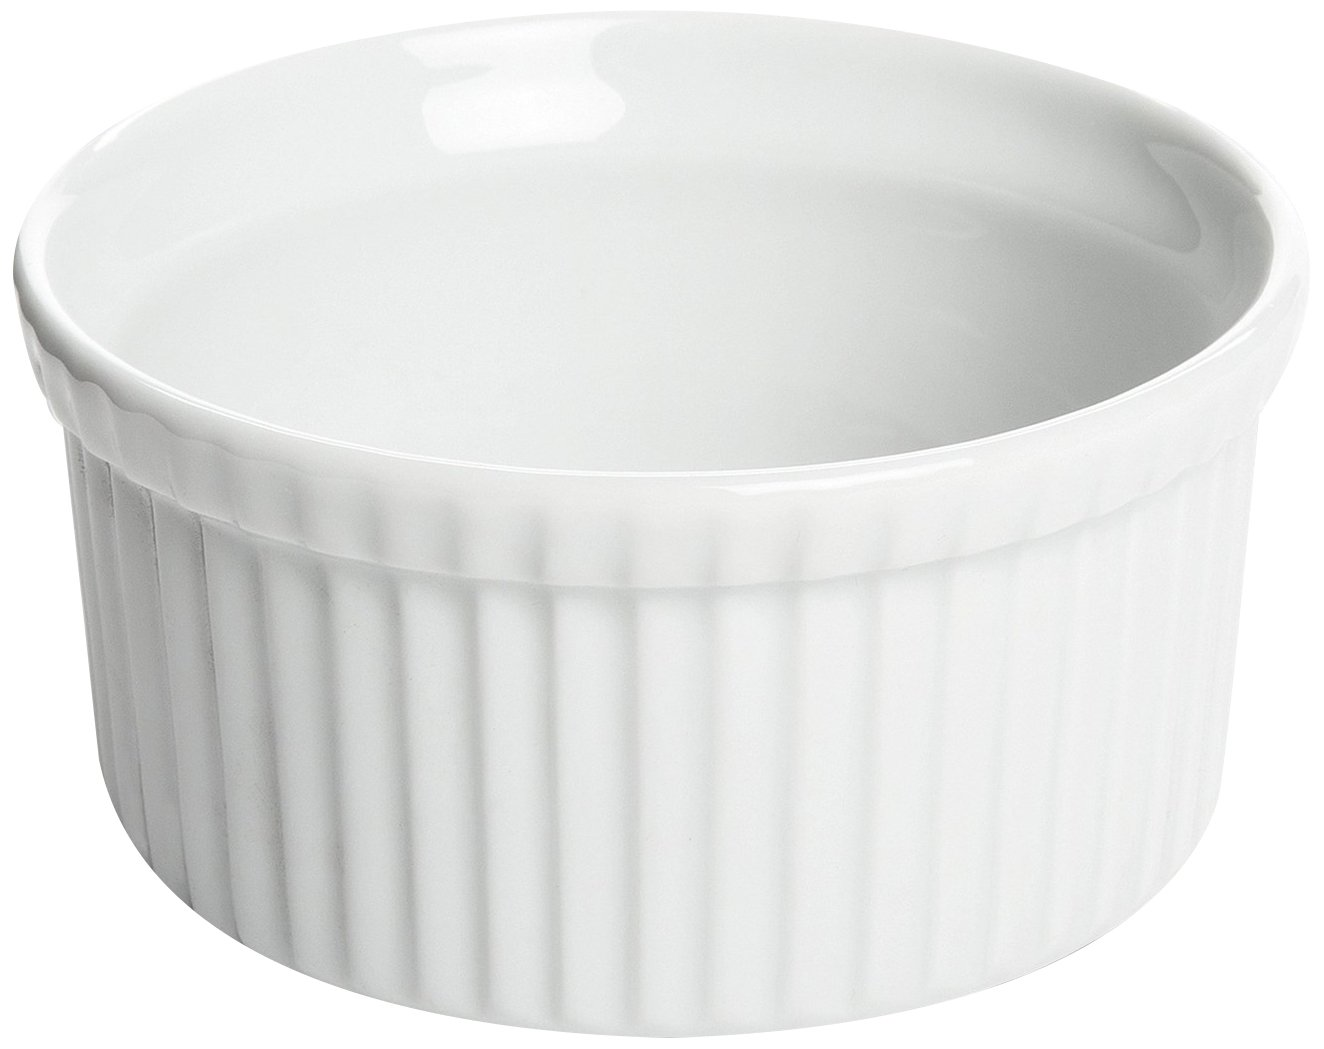 Fox Run 3908 Souffle Dish, 16-Ounce (White) 3908COM